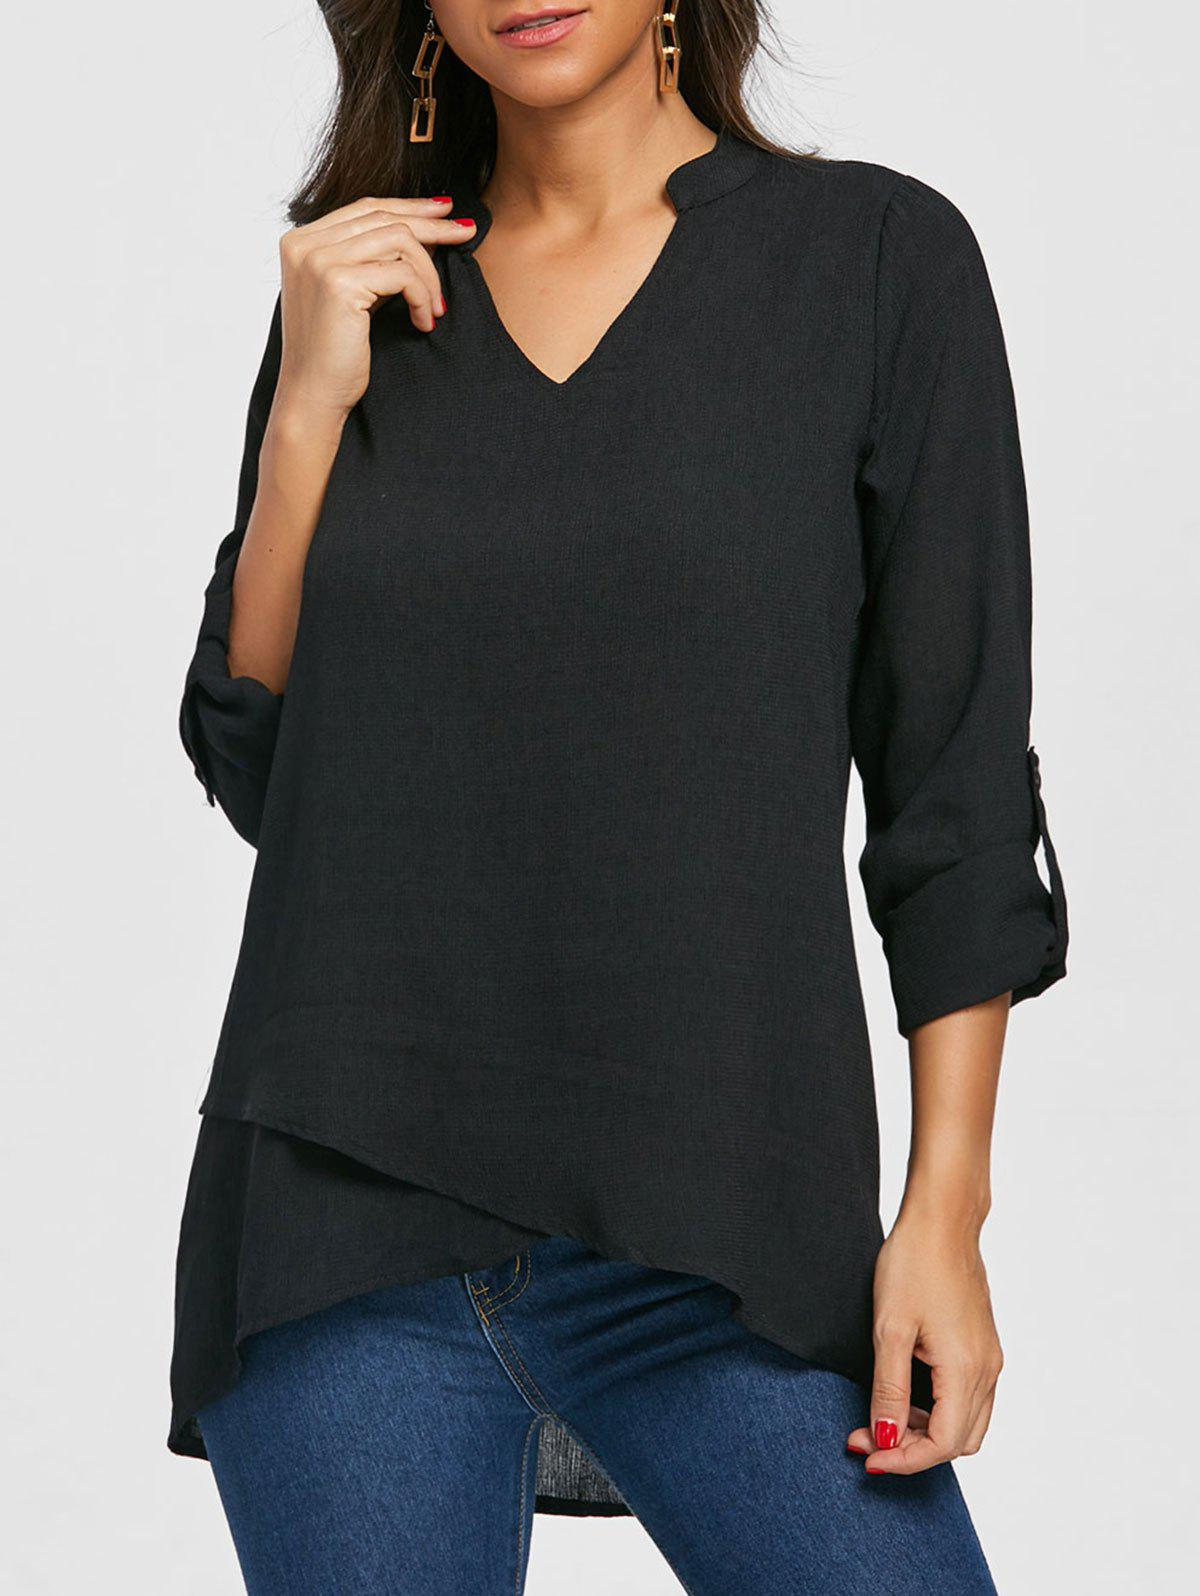 Cheap V Neck Tunic Asymmetric Blouse